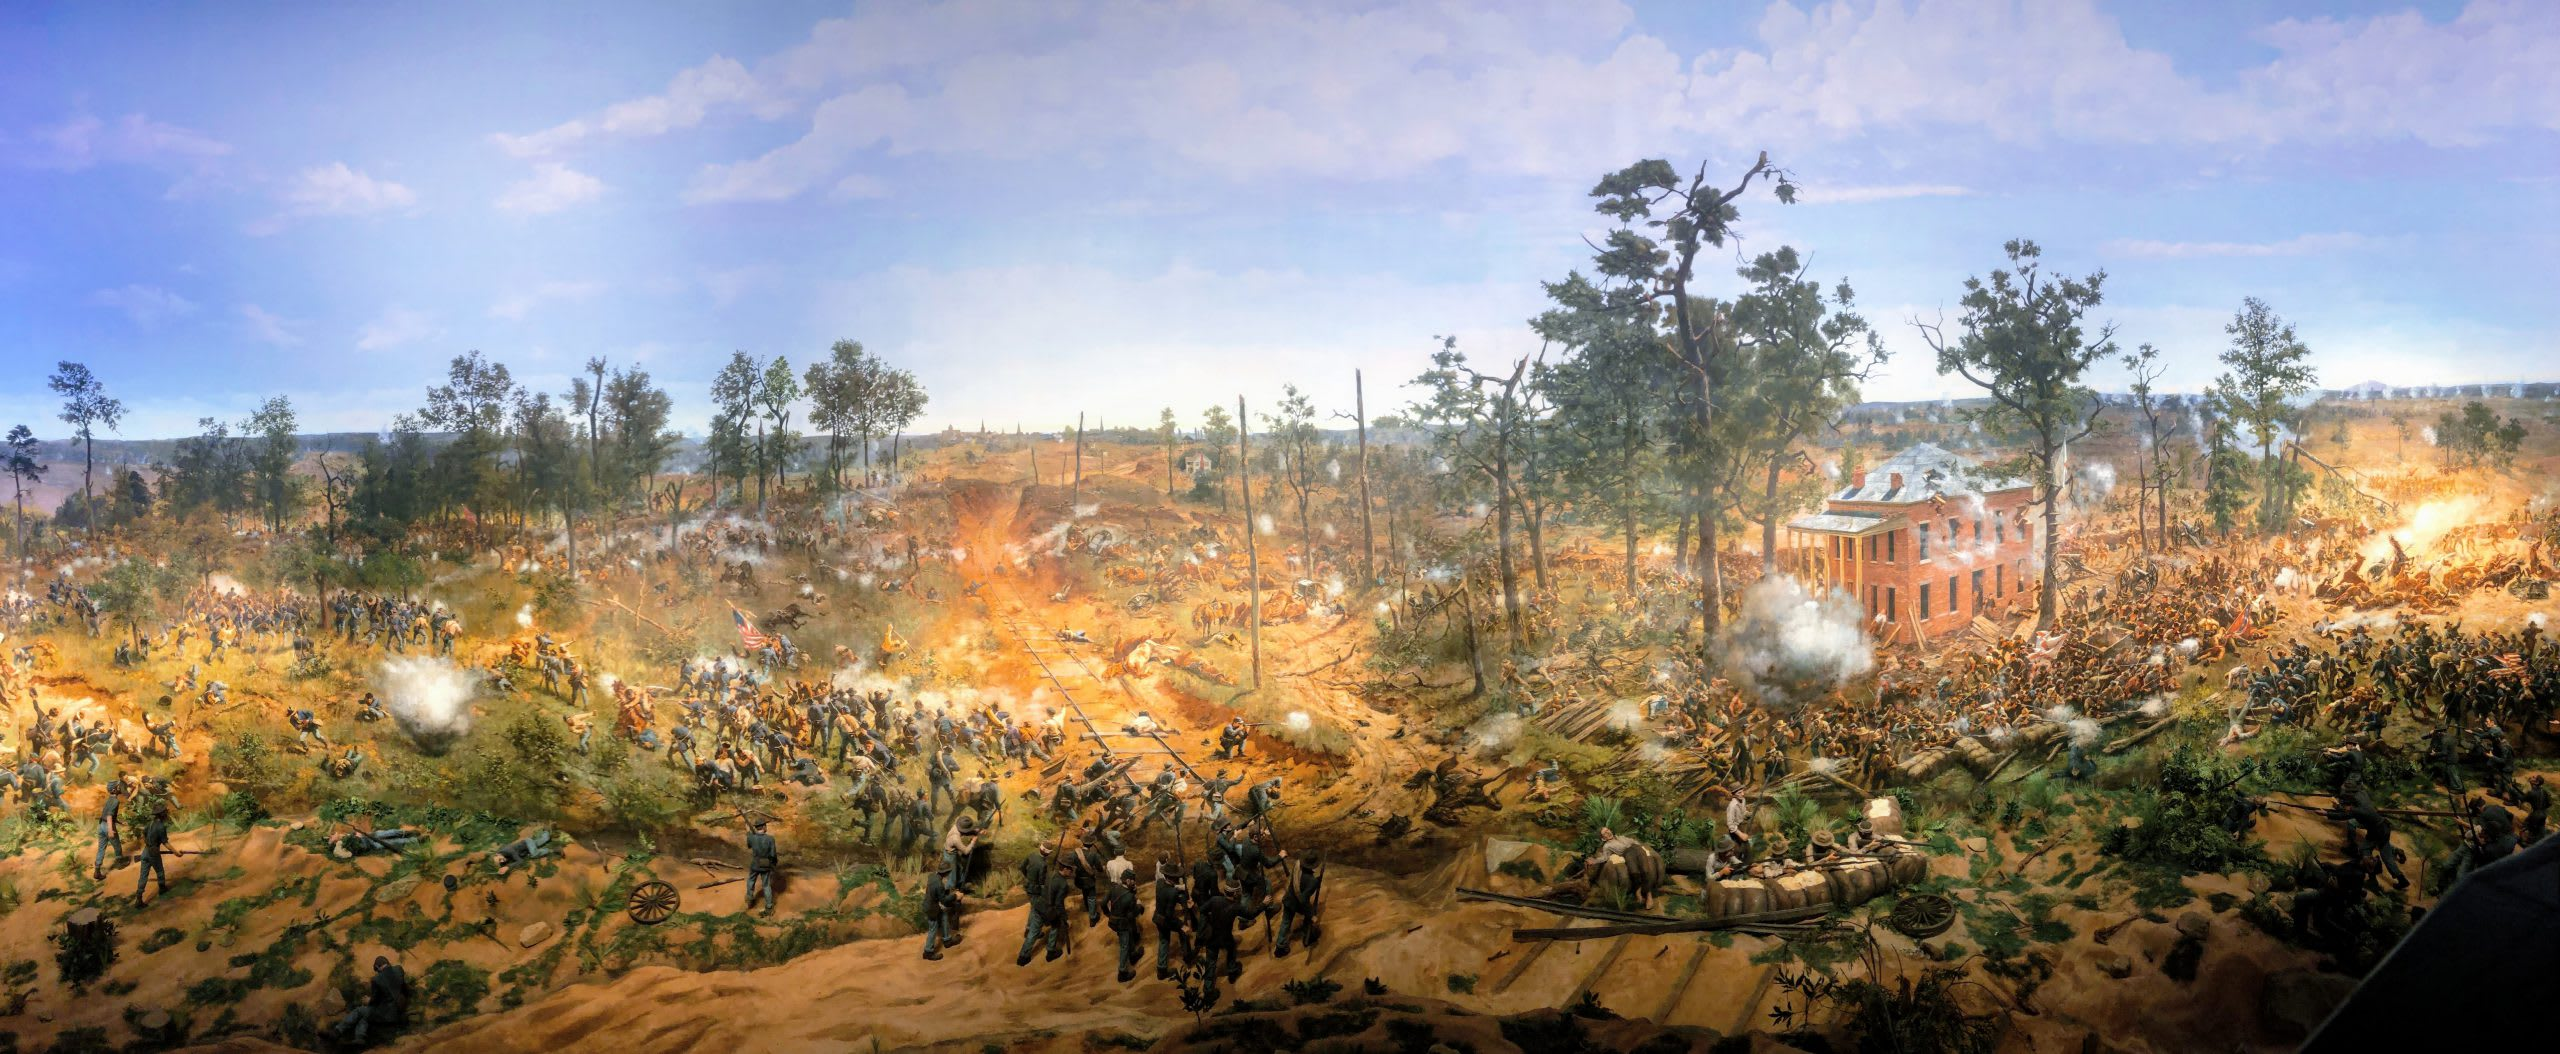 Cyclorama Battle of Atlanta Painting at Atlanta History Center